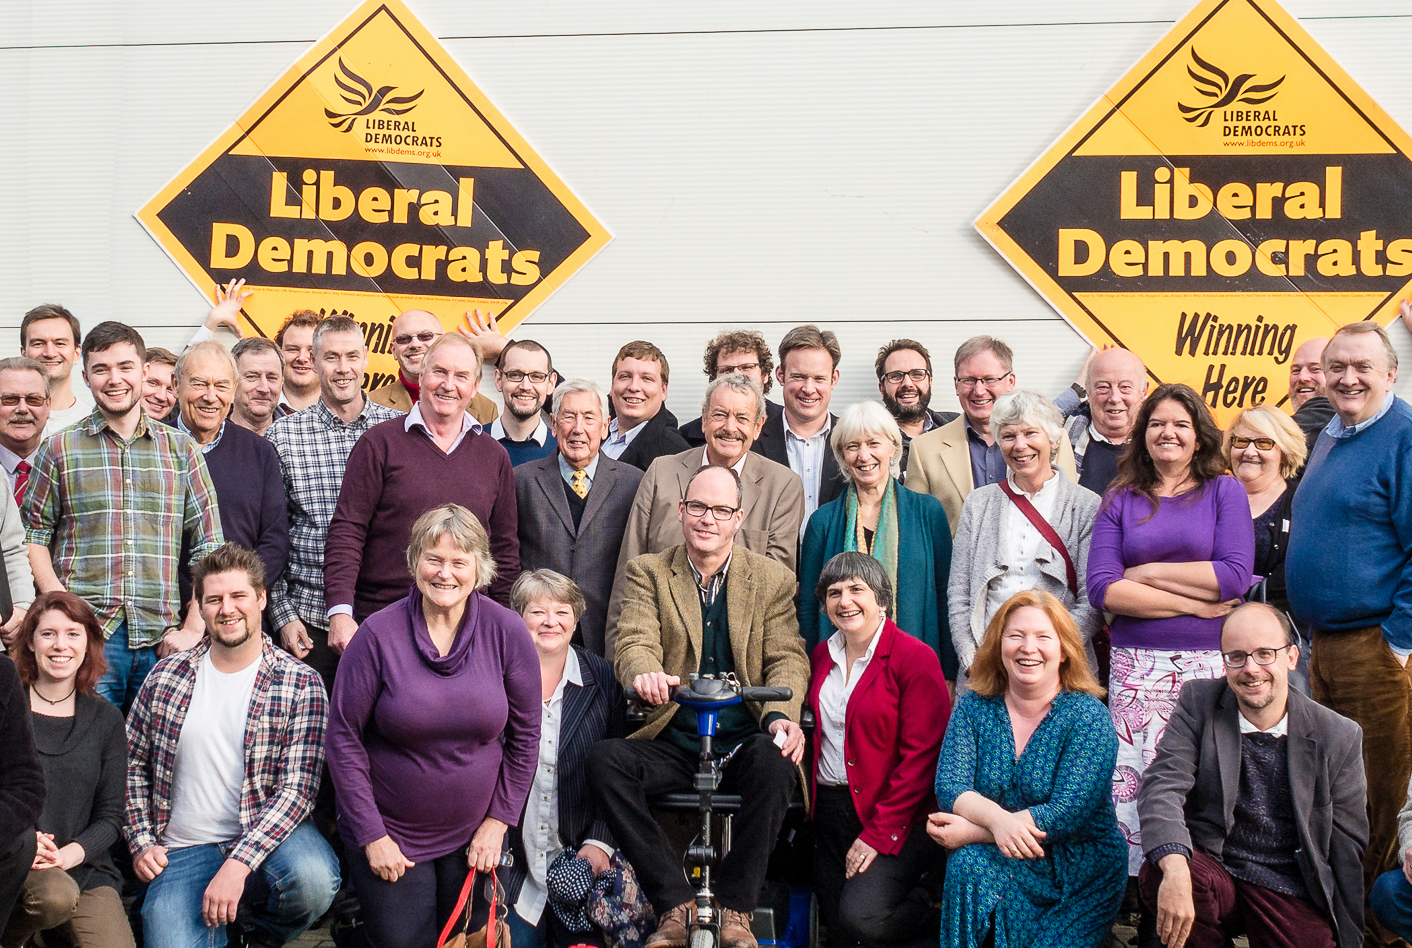 Now is the time to join the Liberal Democrats